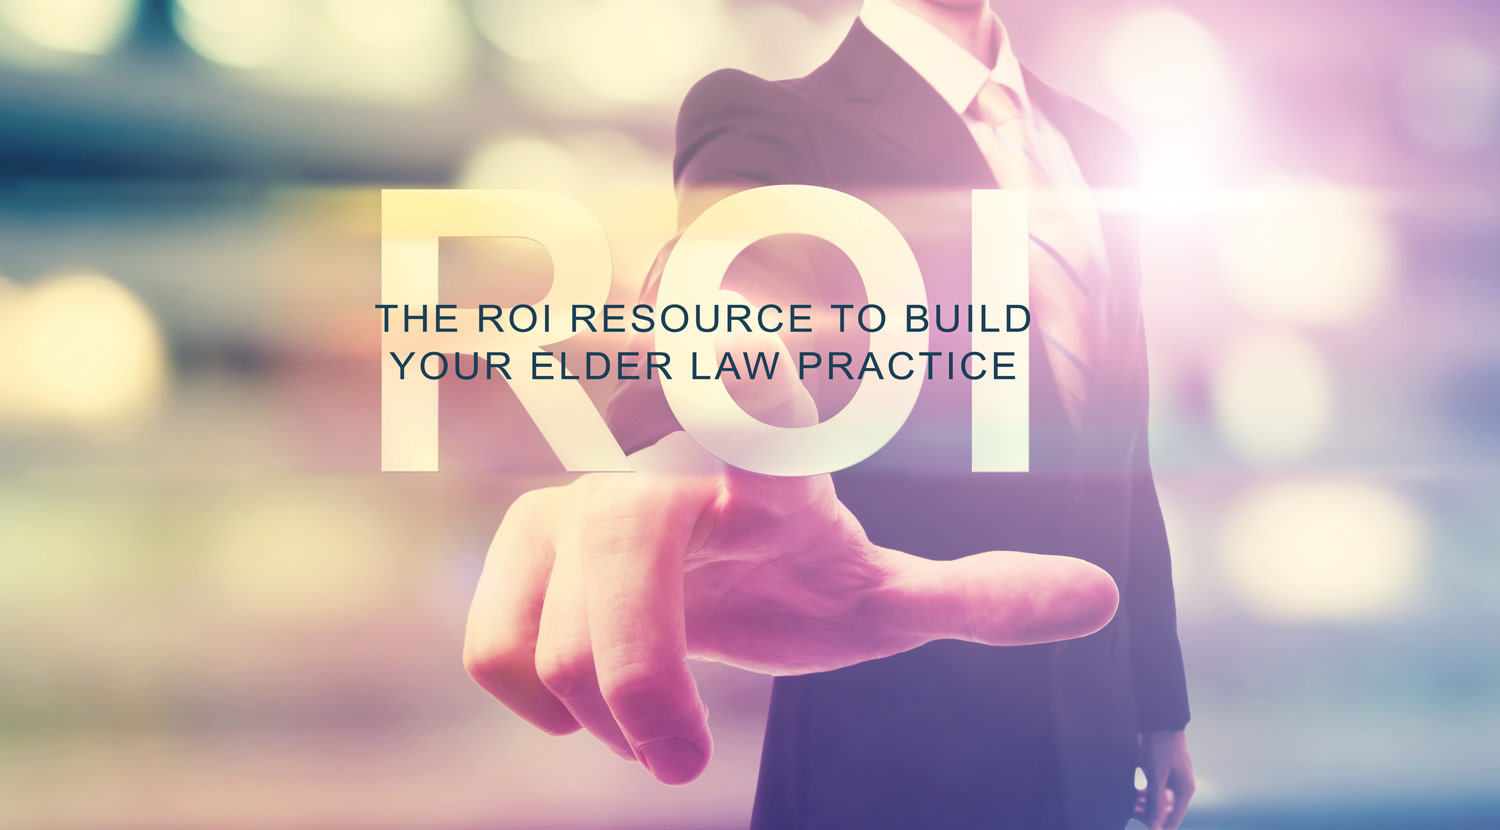 The-ROI-Resource-to-Build-Your-Elder-Law-Practice.jpg